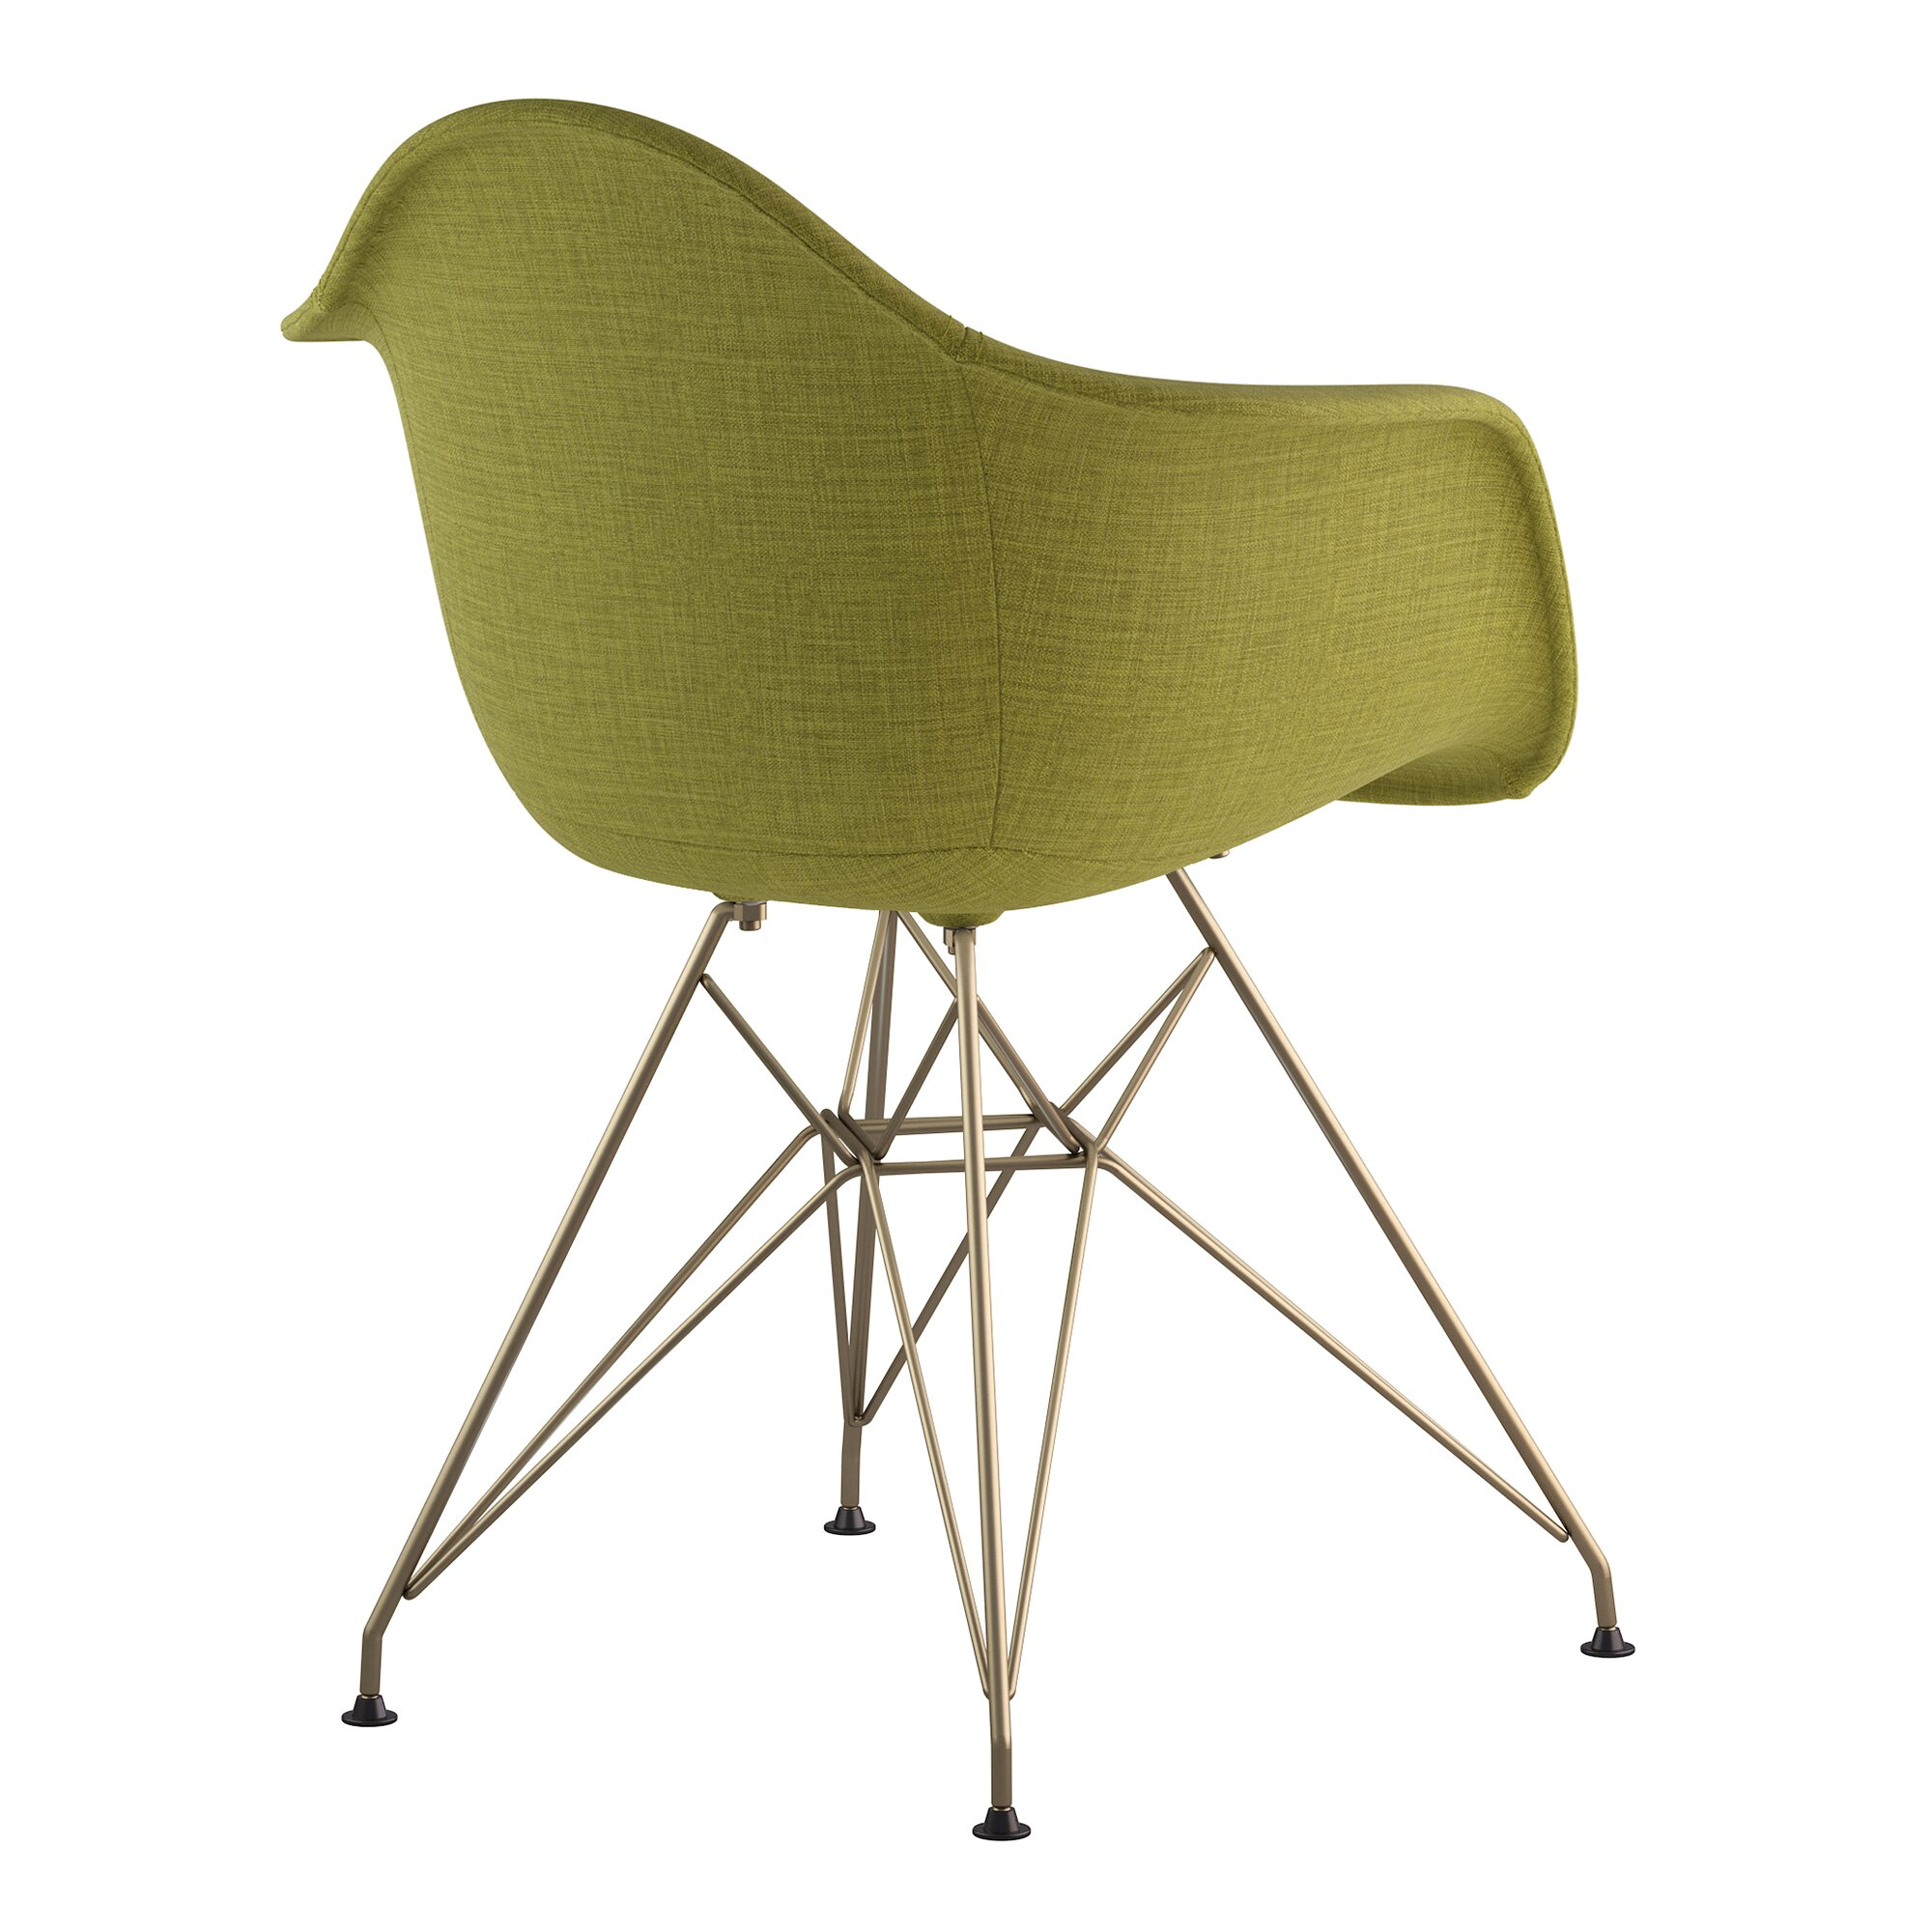 eiffle chair The eames chair is one of the stylish chairs around the world buy new eiffel leather chair or living room furniture on competitive prices.